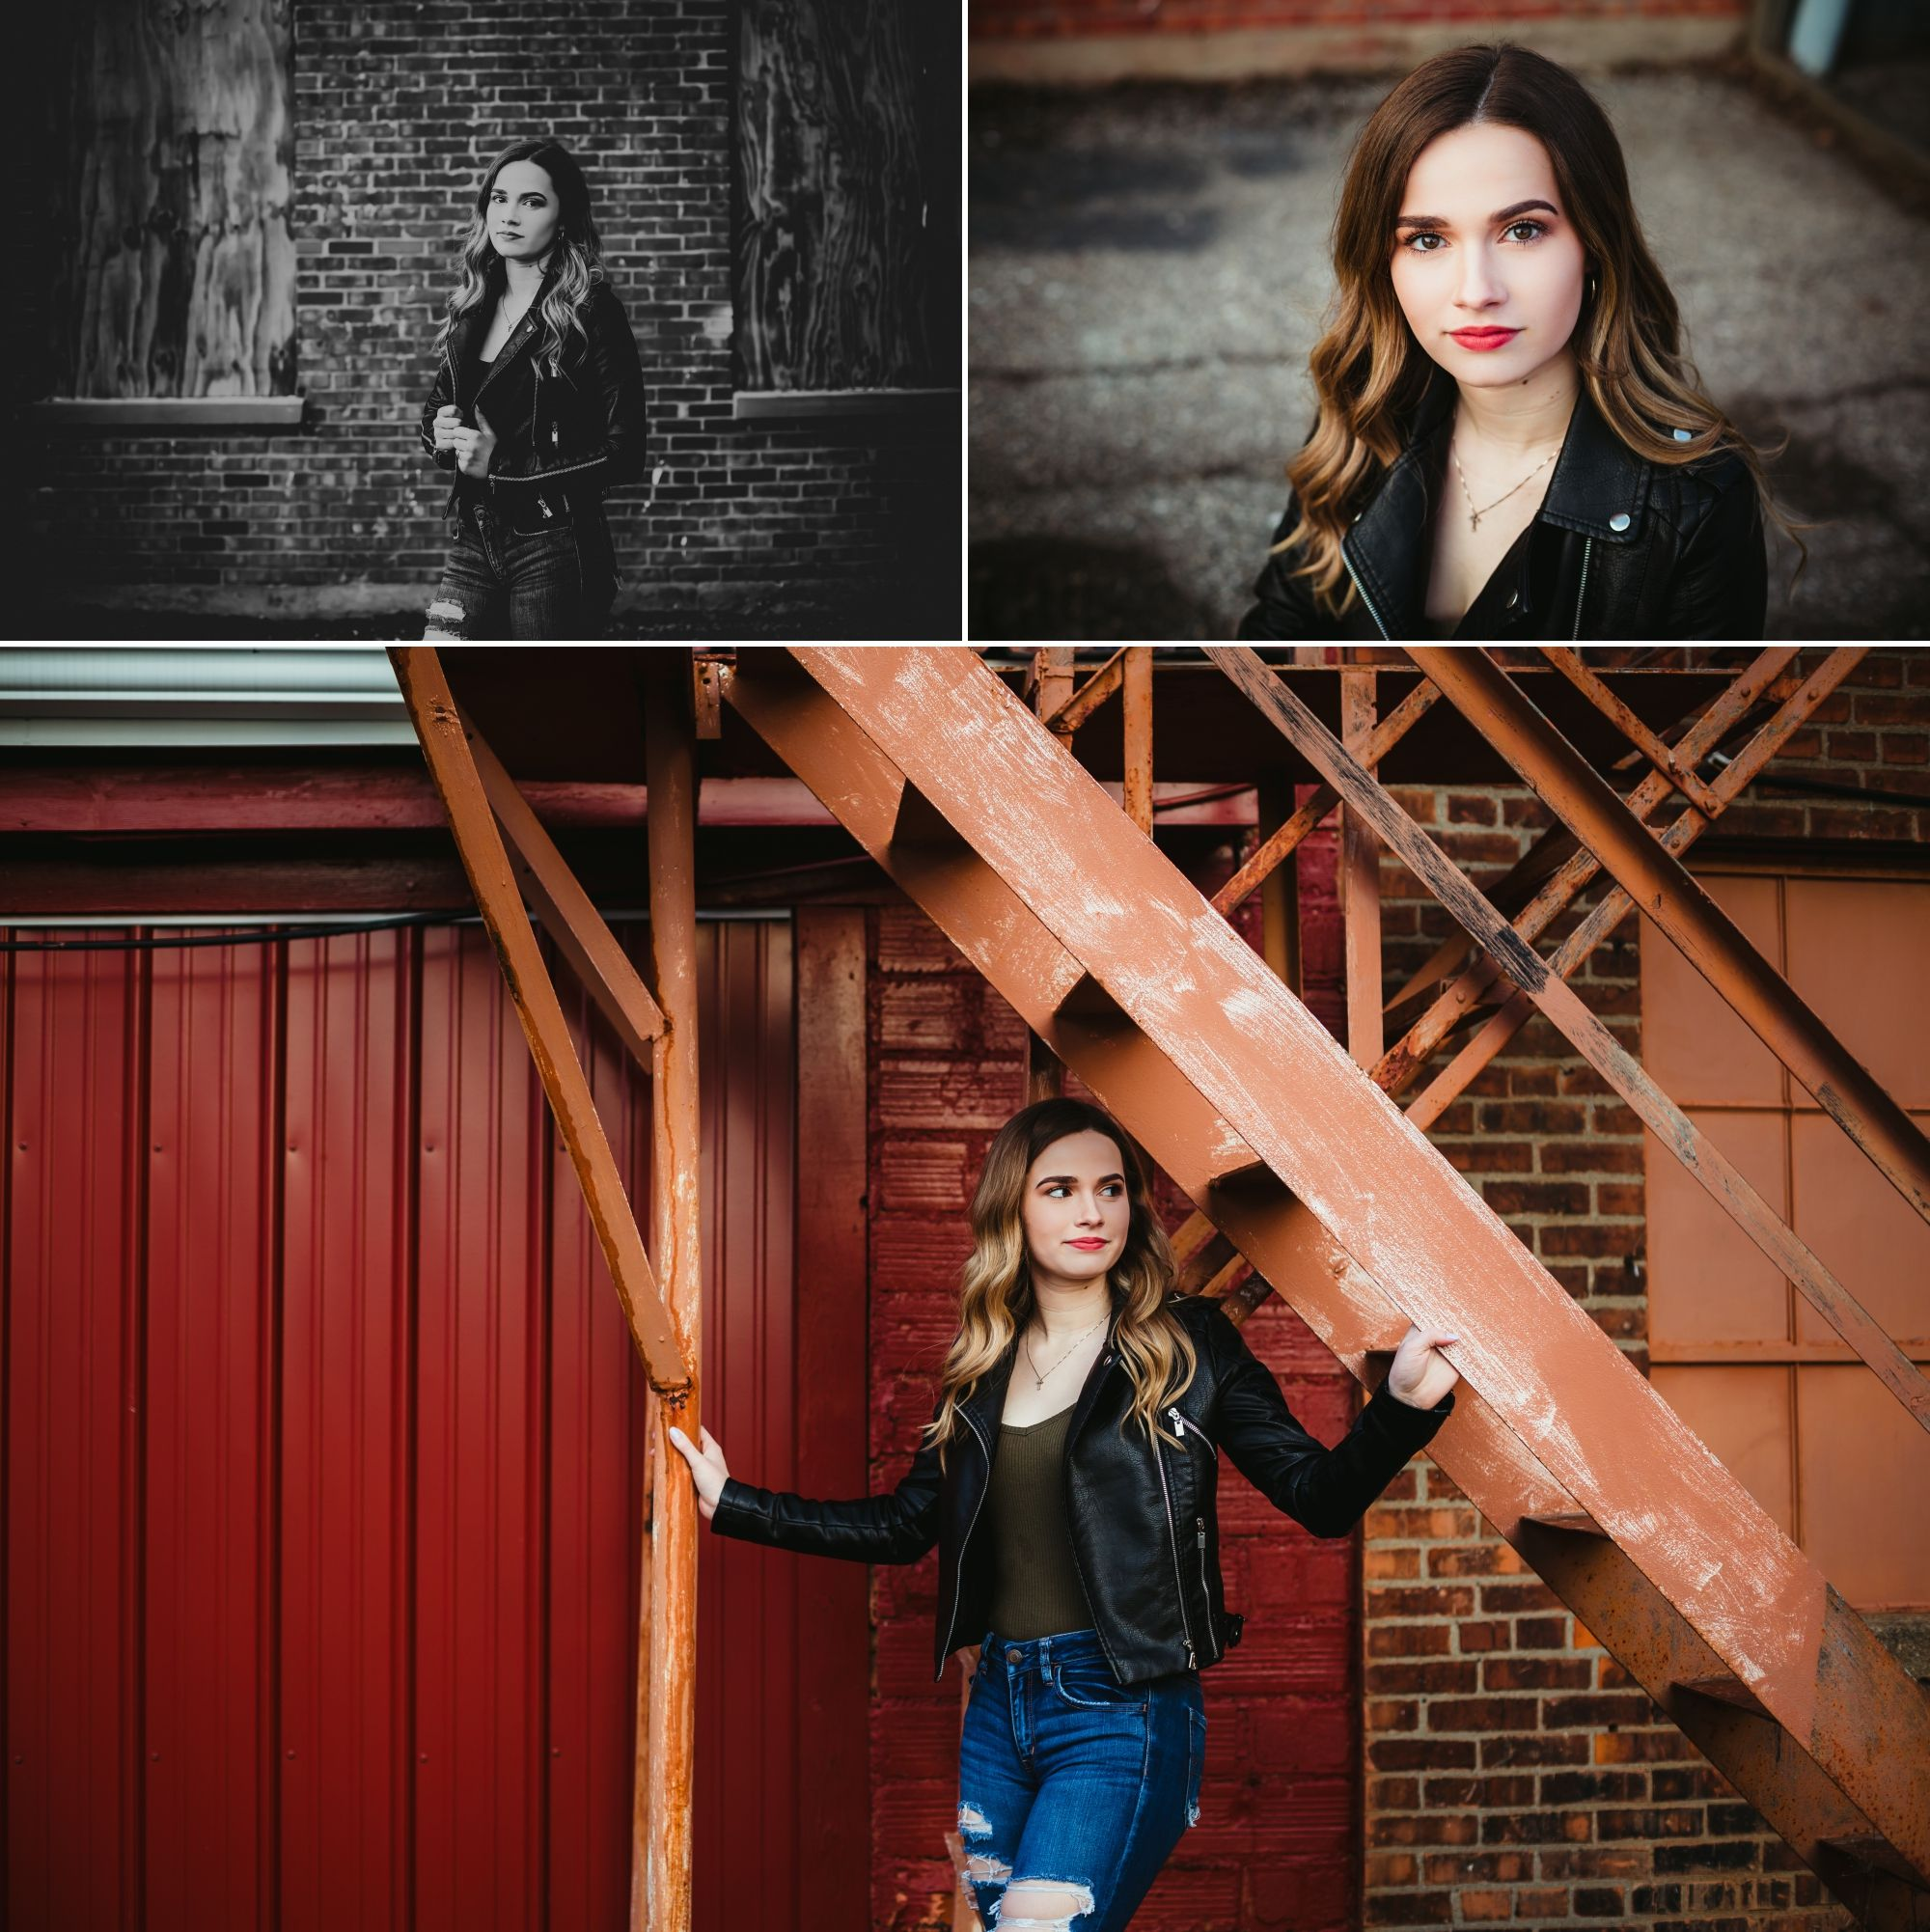 Photos of a high school senior girl in a black leather jacket posing downtown.